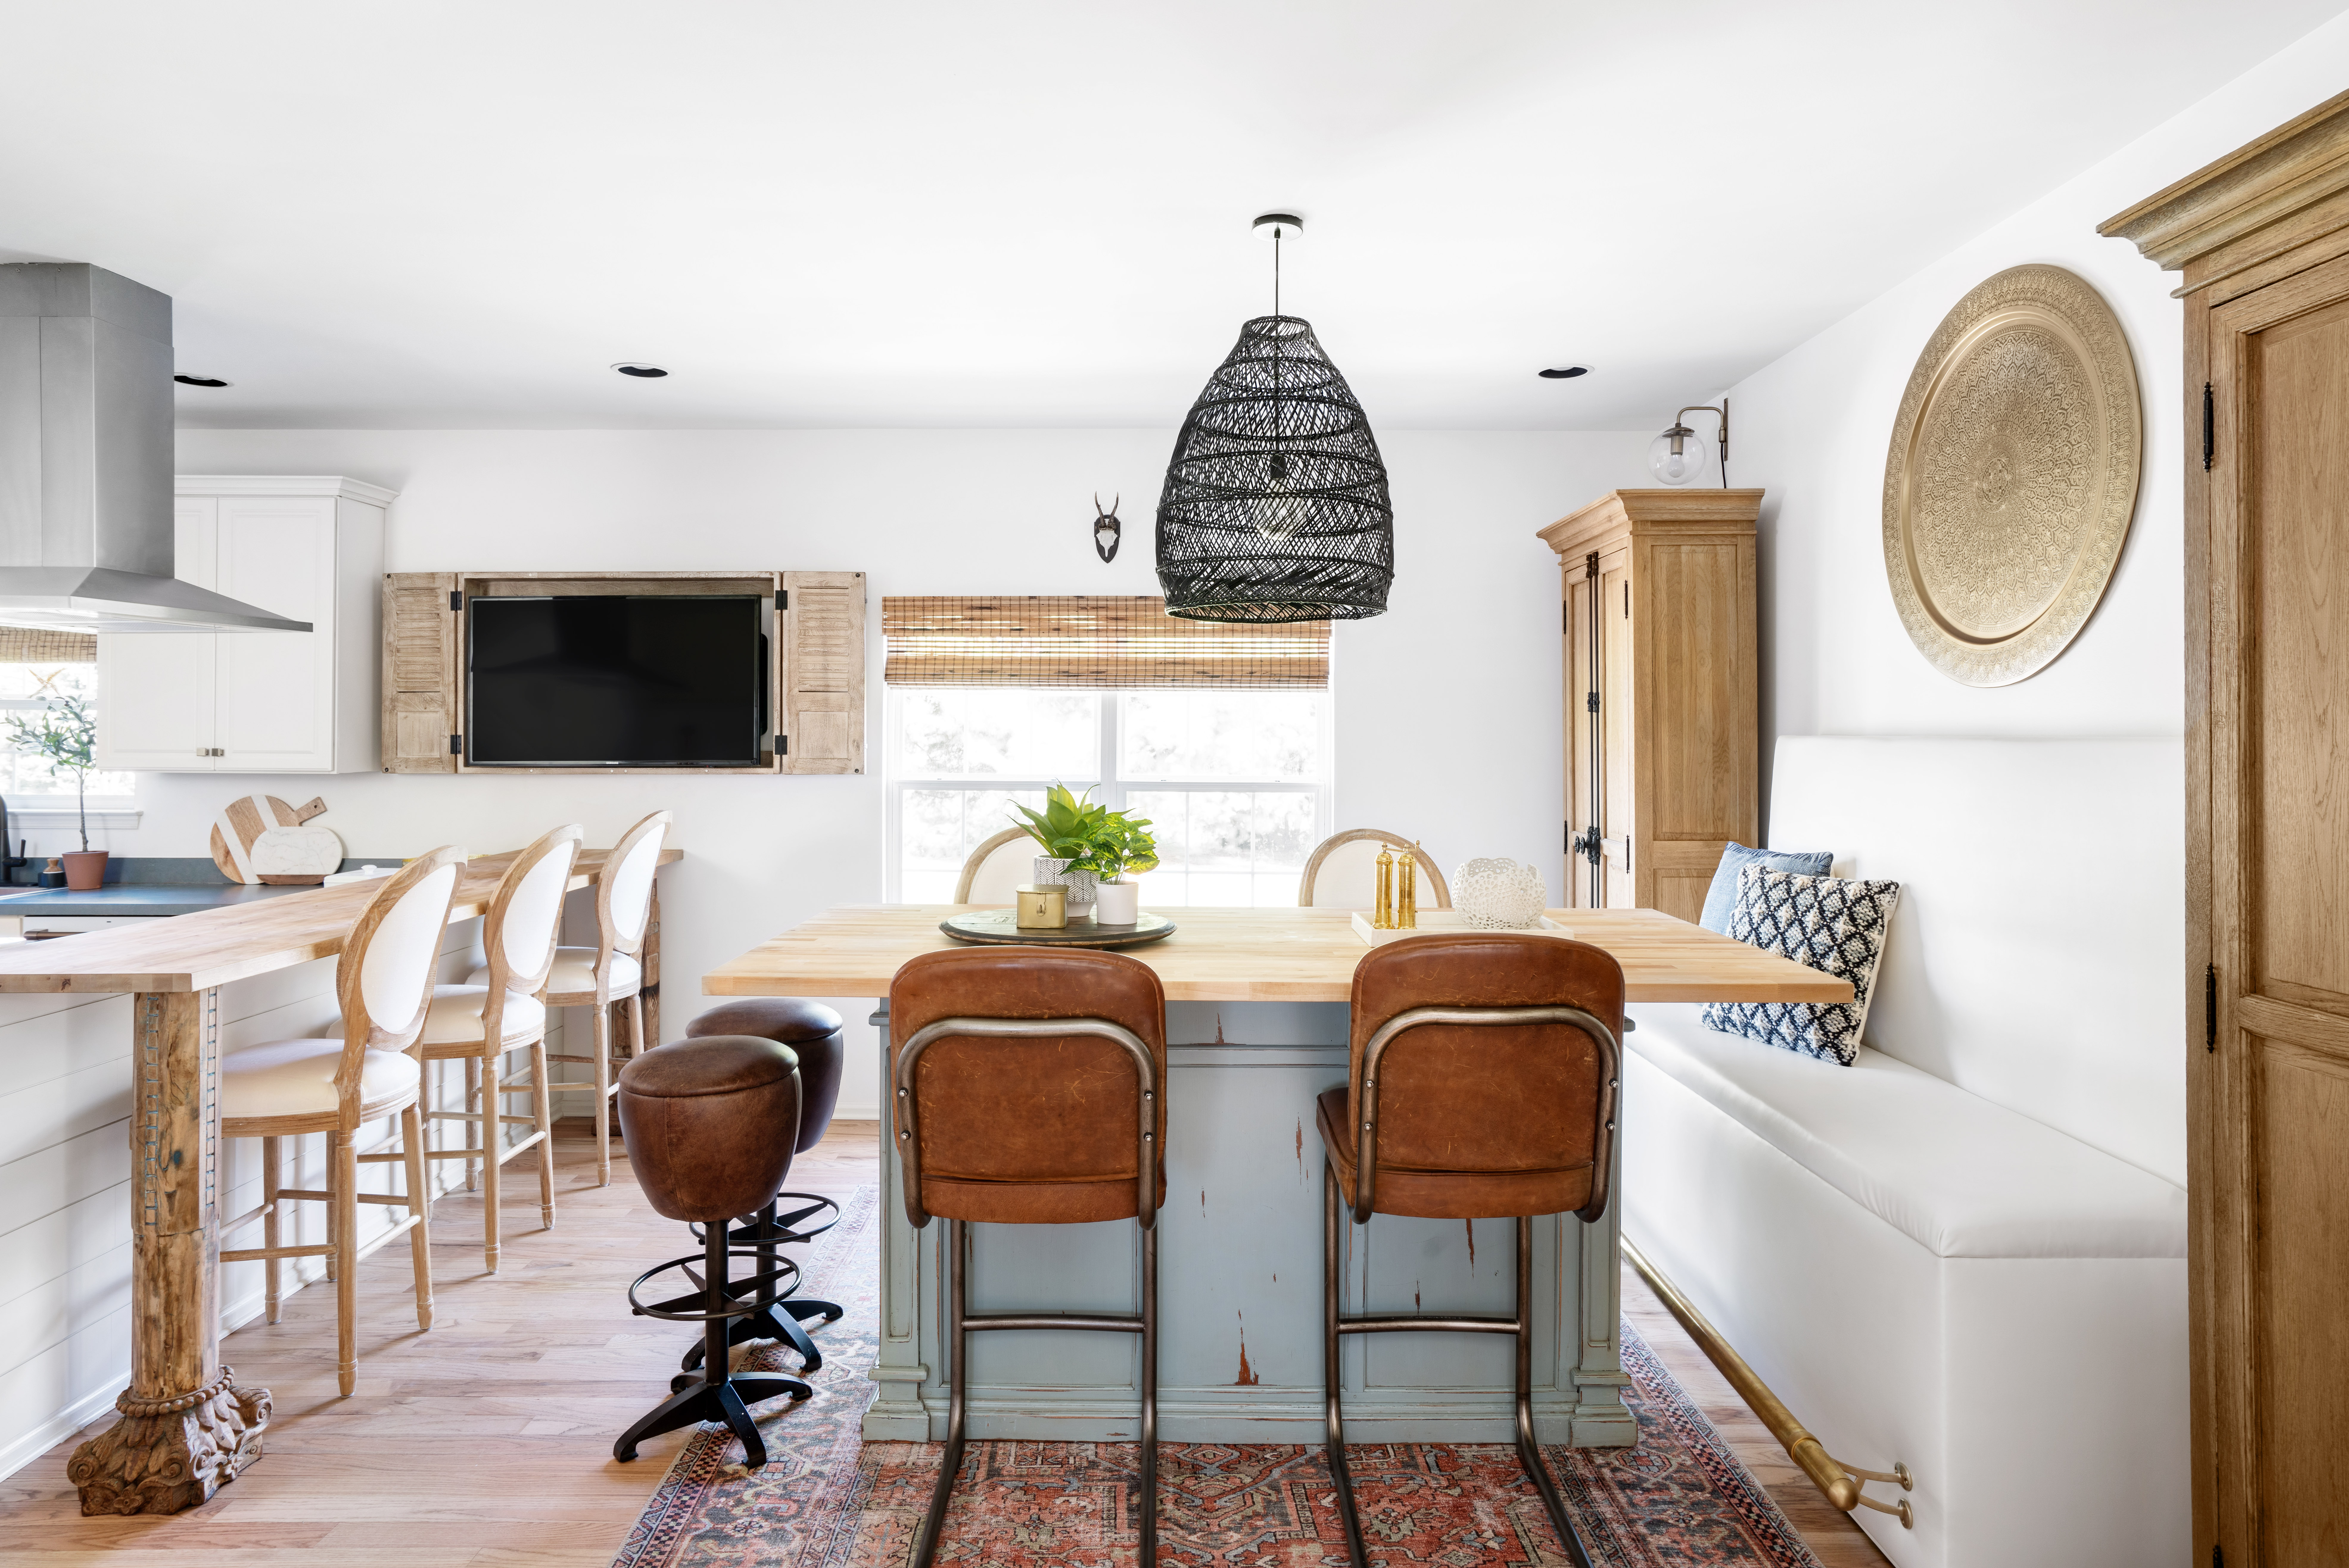 Get an Interior Designer's Take On Simple But Refreshing Changes For Your Home